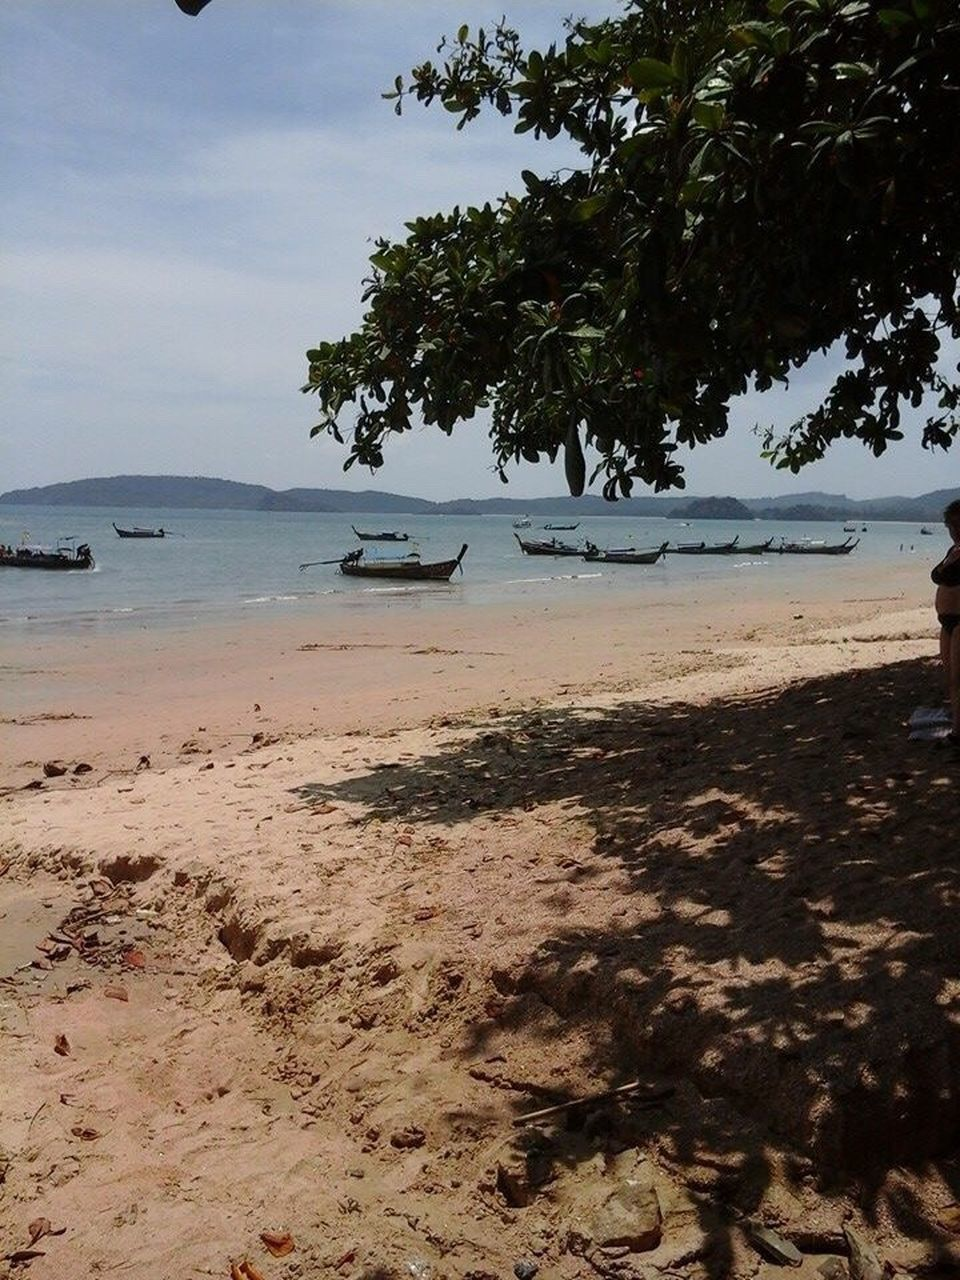 beach, water, shore, sea, sand, nature, tranquility, beauty in nature, scenics, tree, tranquil scene, sky, outdoors, day, no people, horizon over water